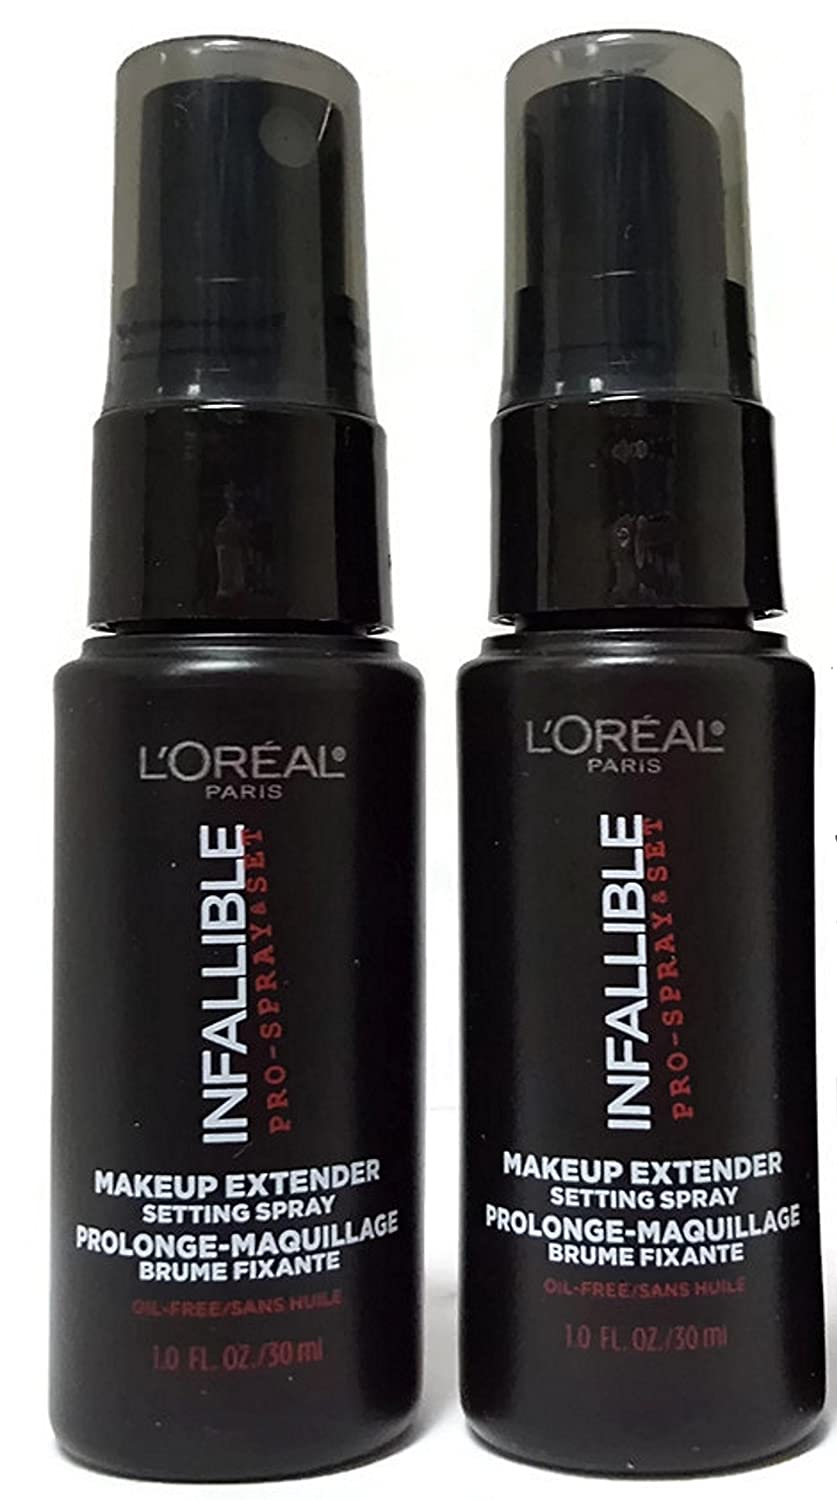 L'Oreal Paris Cosmetics Infallible Pro-Spray and Makeup Extender, Setting Spray,Travel size 30 ml/1.0 fluid ounce, (Pack of 2) by L'Oreal Paris